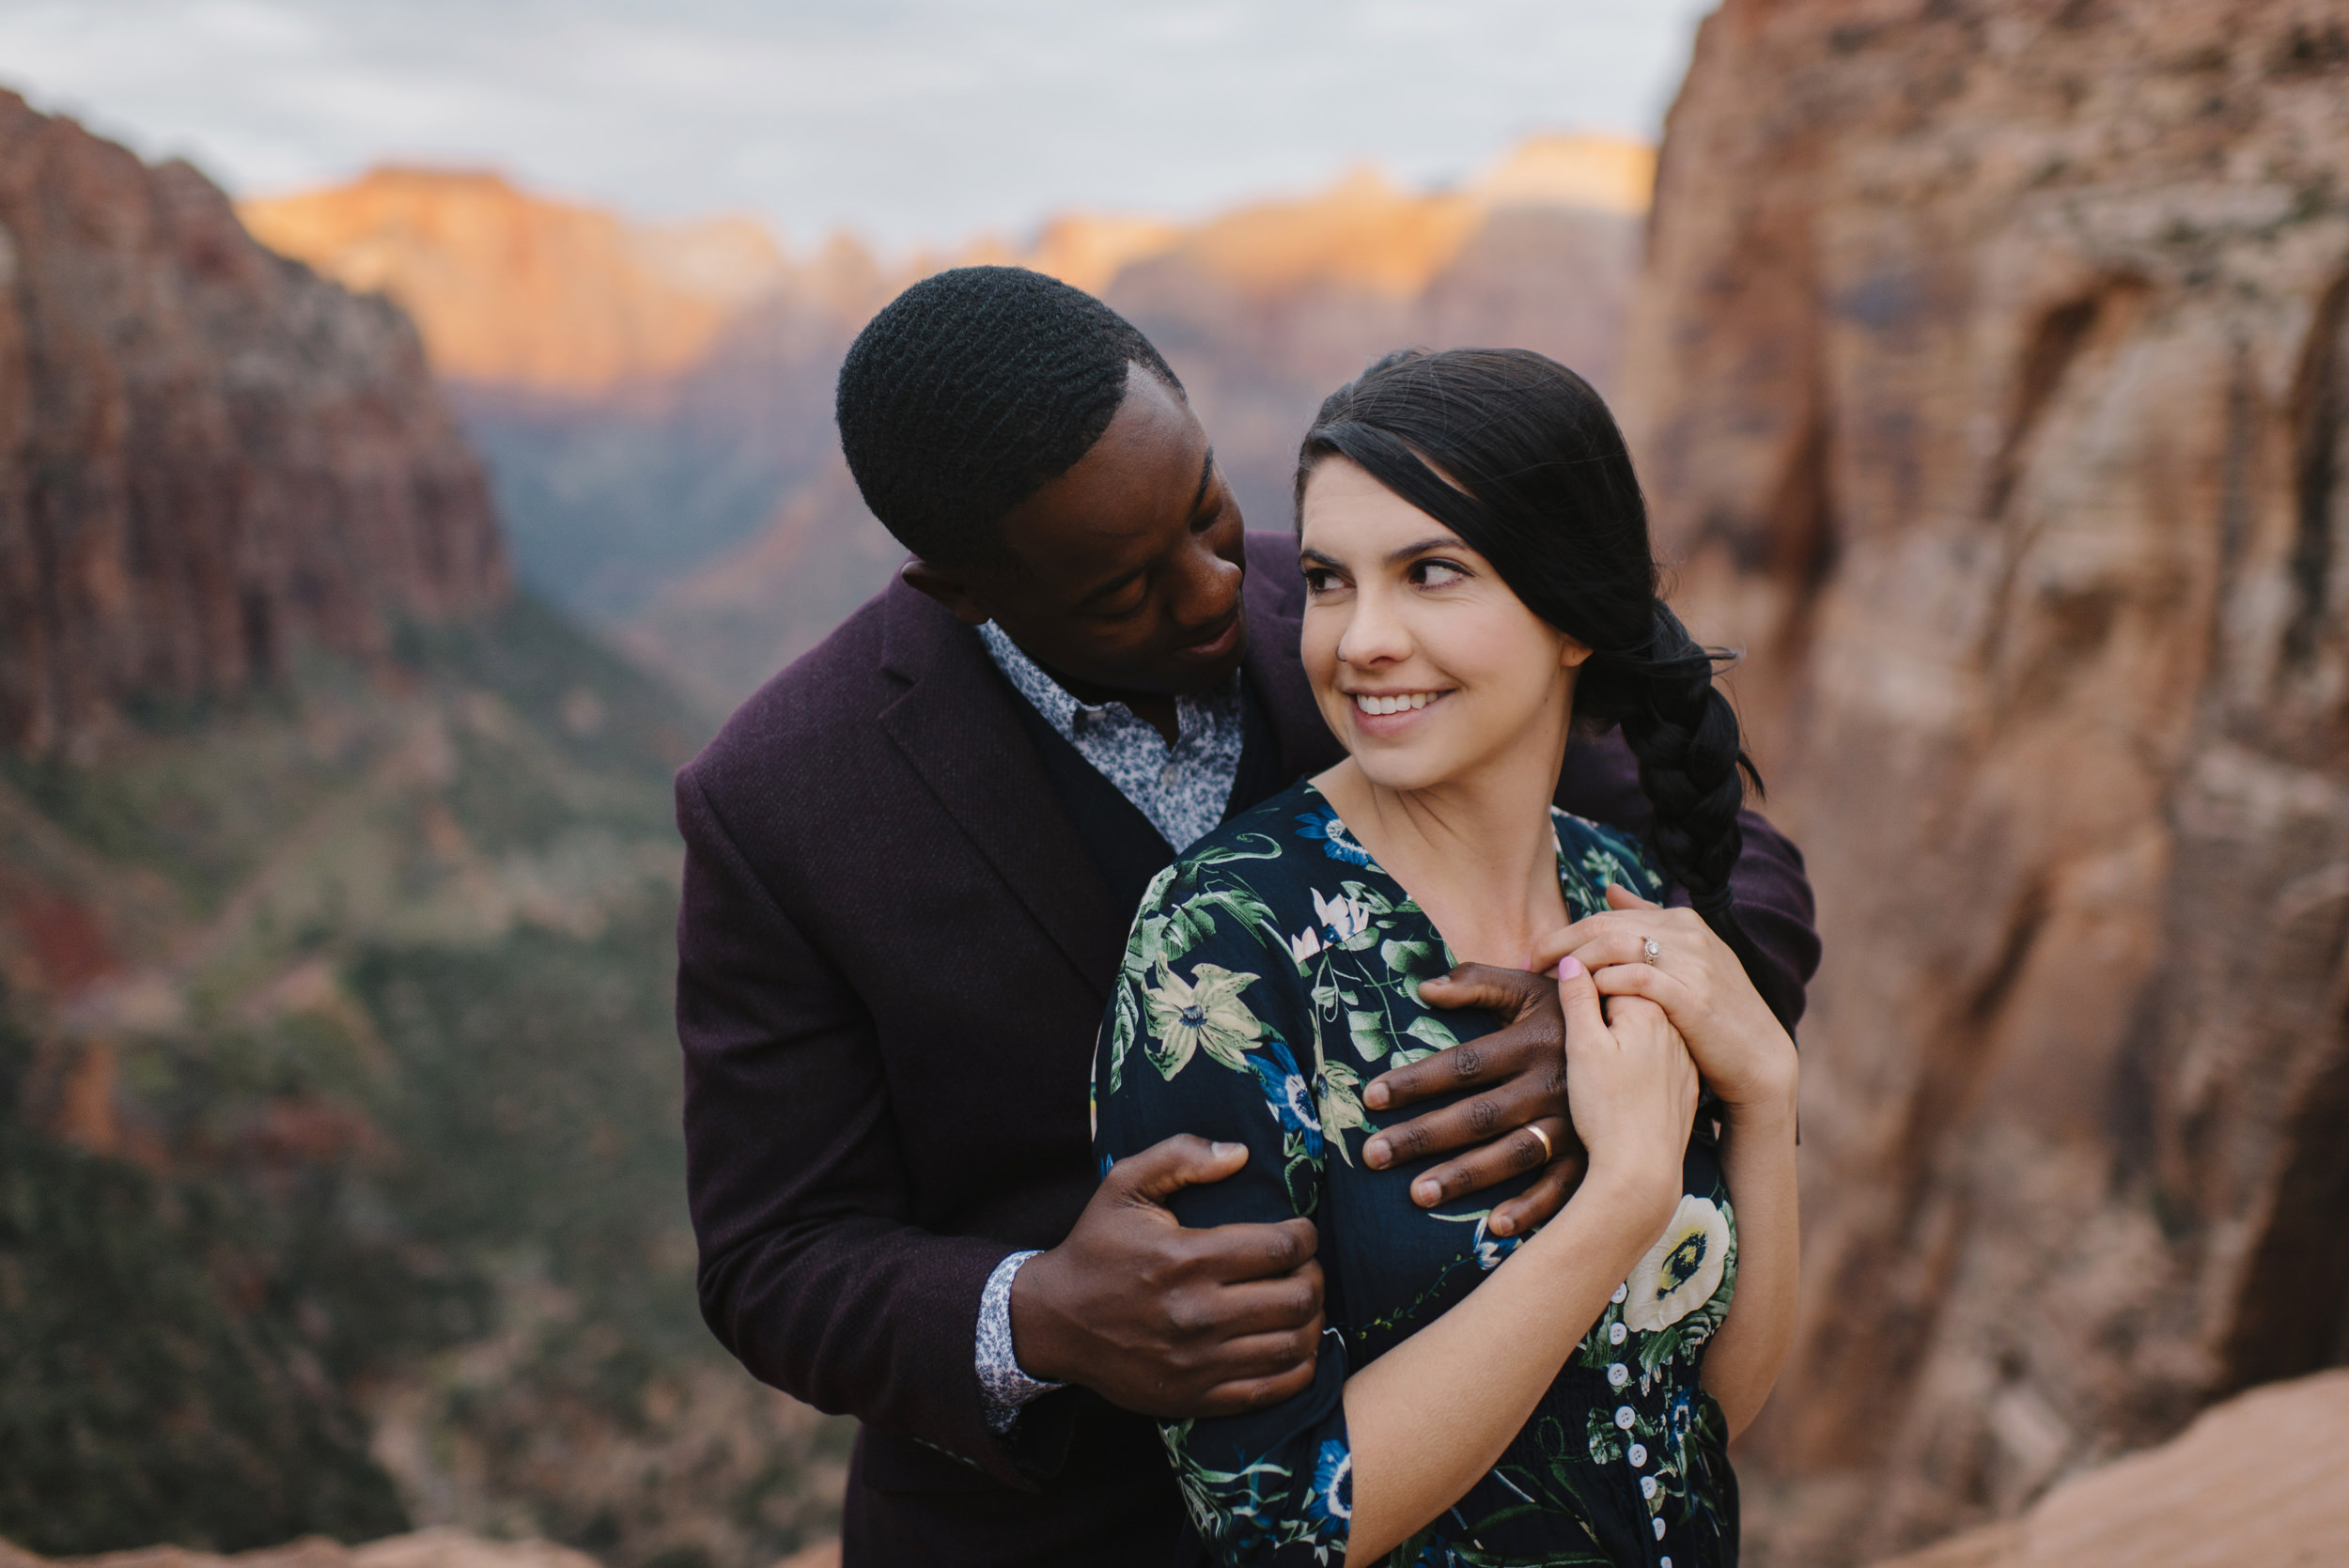 A woman is held by her husband during their Angels Landing Engagement Photography Session with Zion National Park Adventure Elopement Photographer Colby and Jess